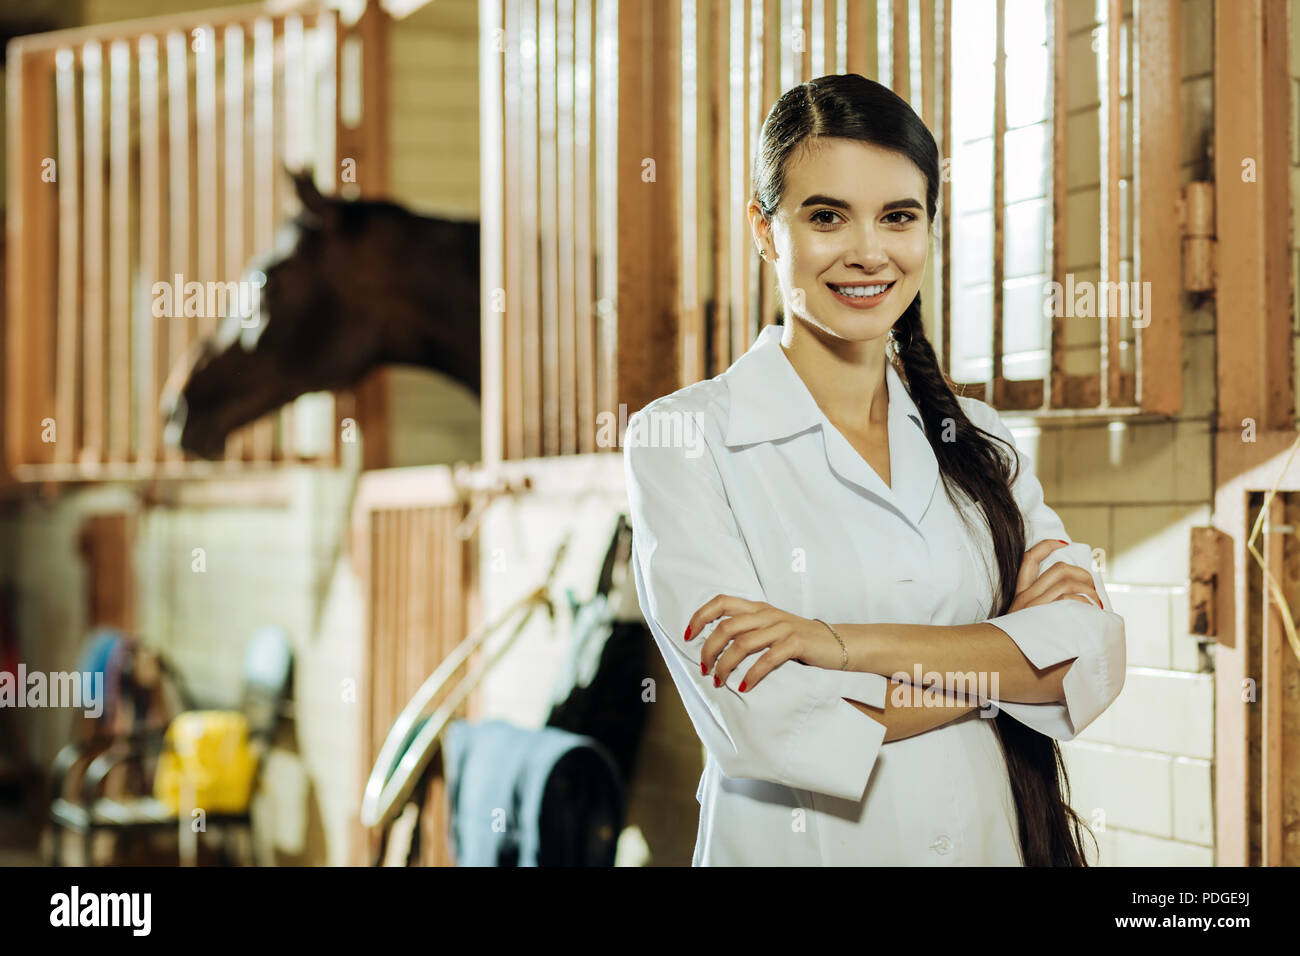 Dark-eyed woman wearing white uniform standing in stable - Stock Image